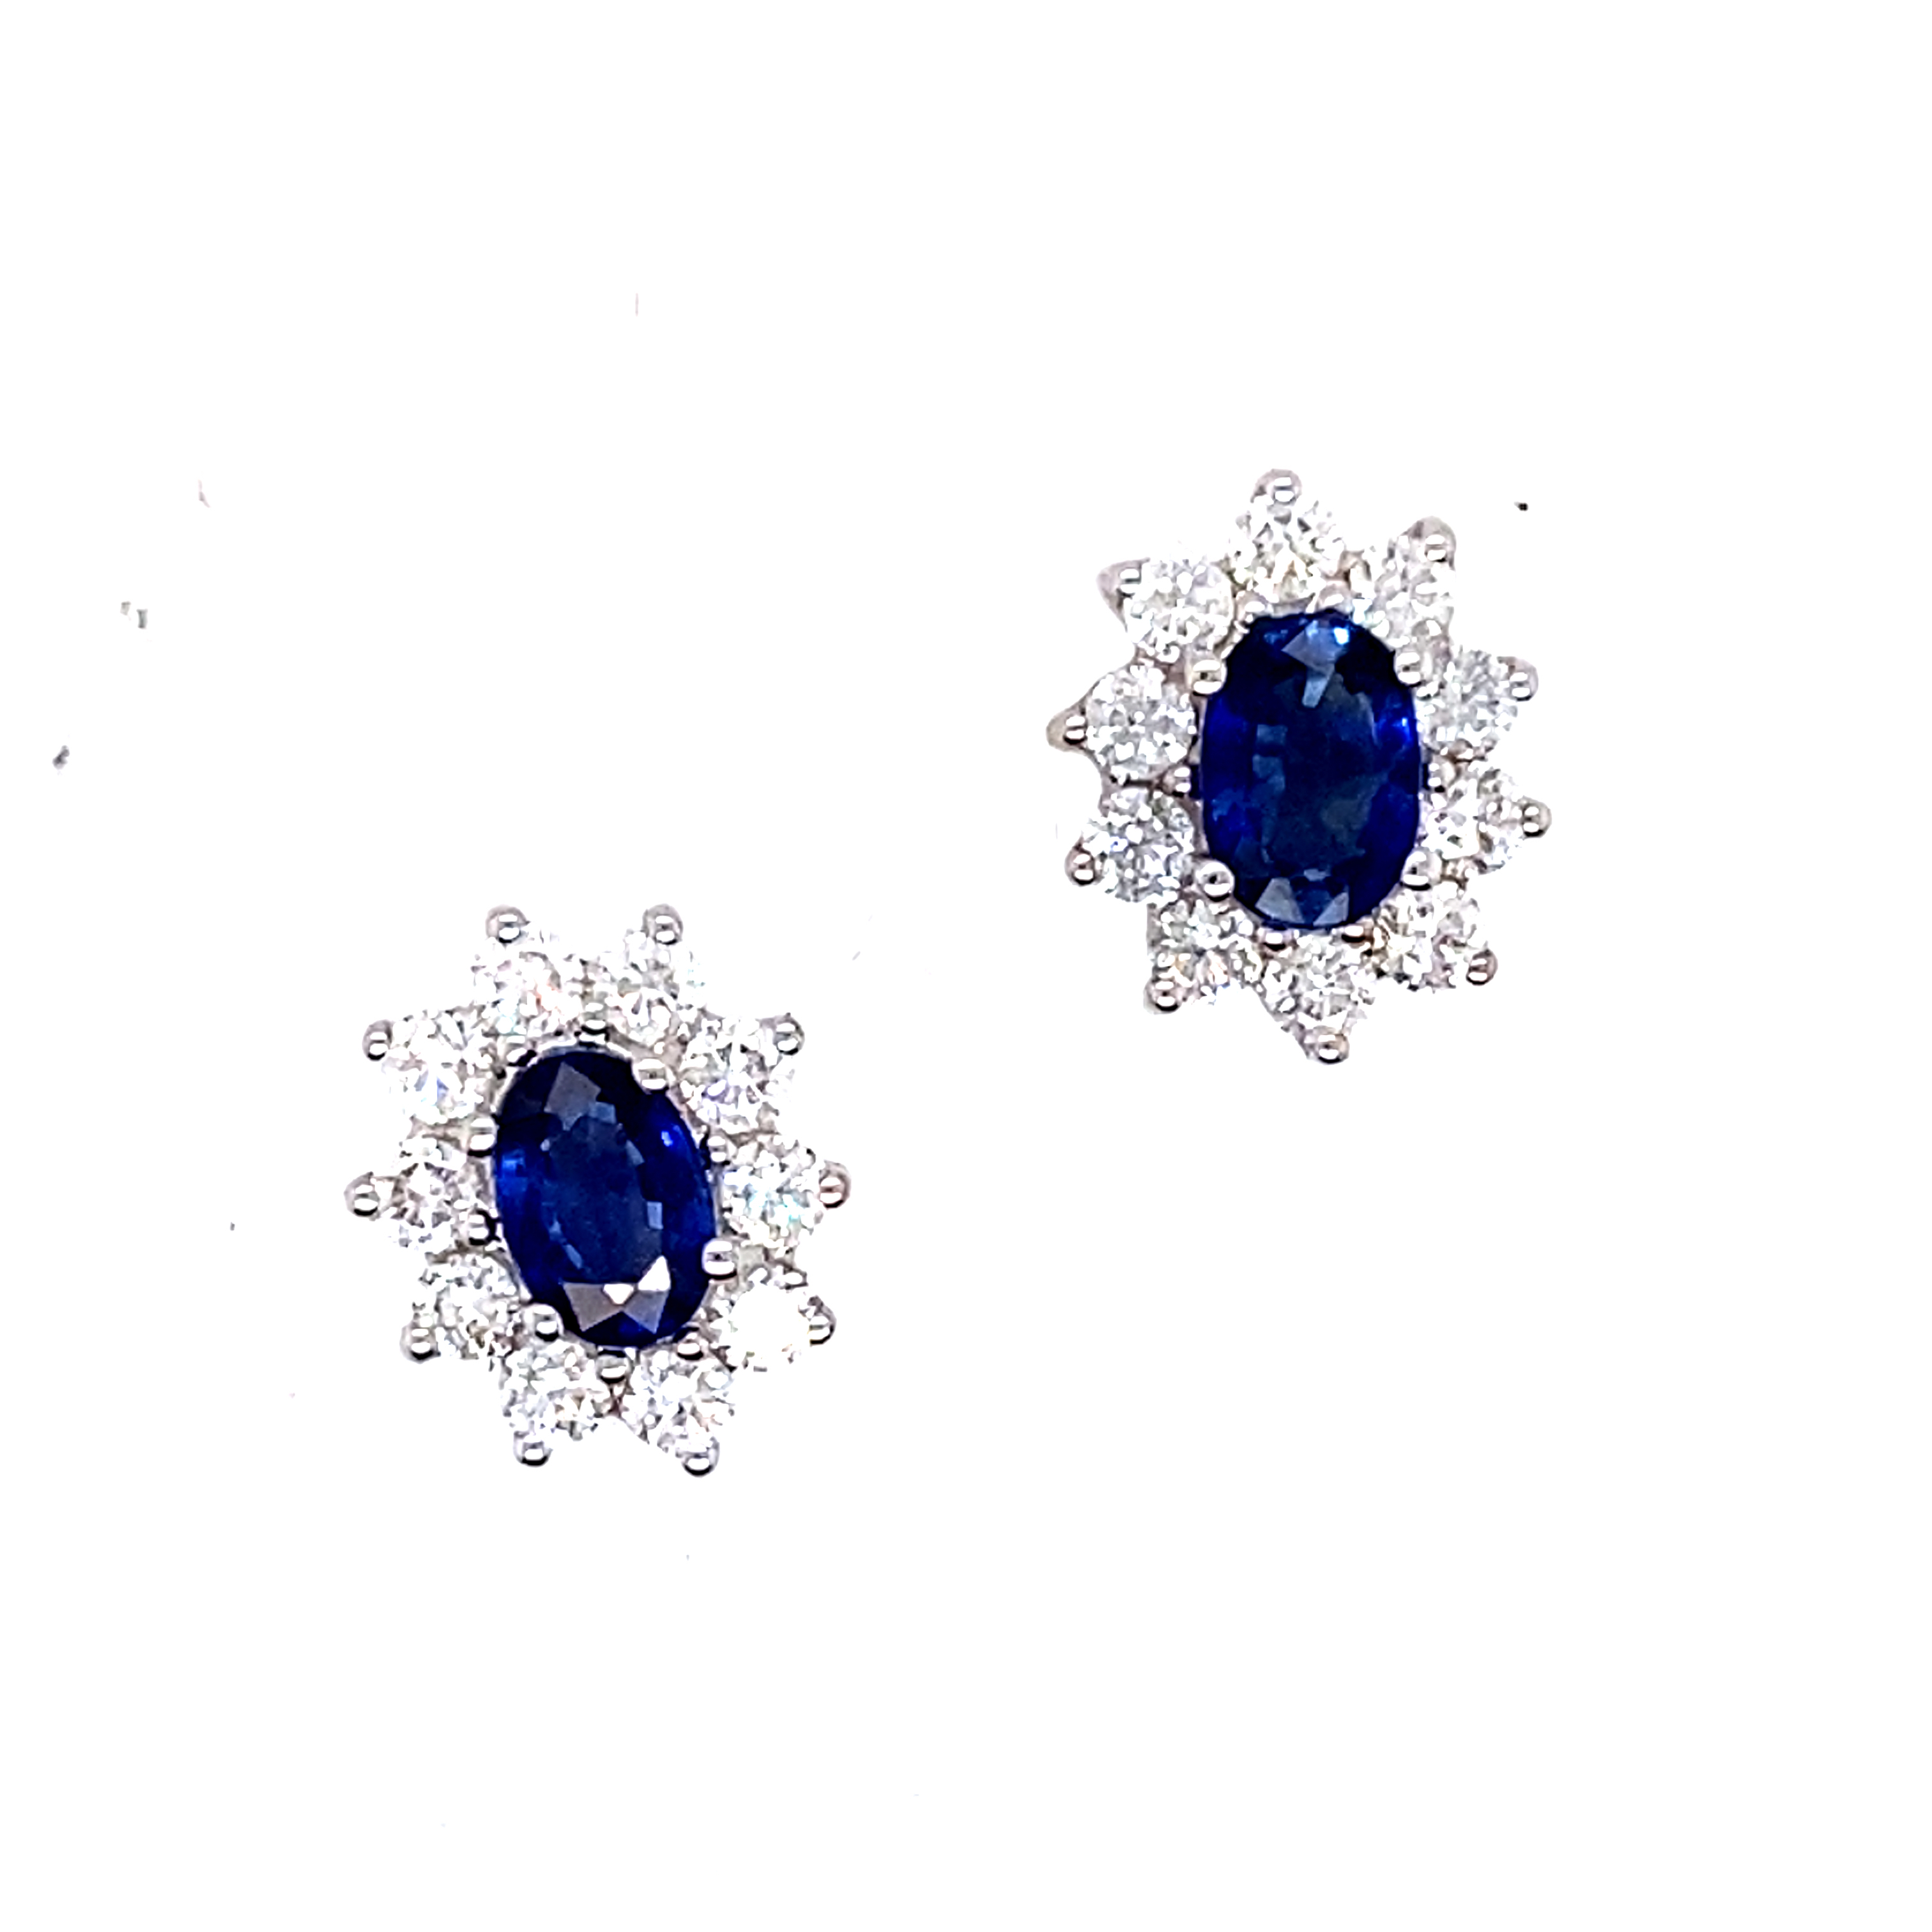 18ct White Gold, Sapphire and Diamond Stud Earrings